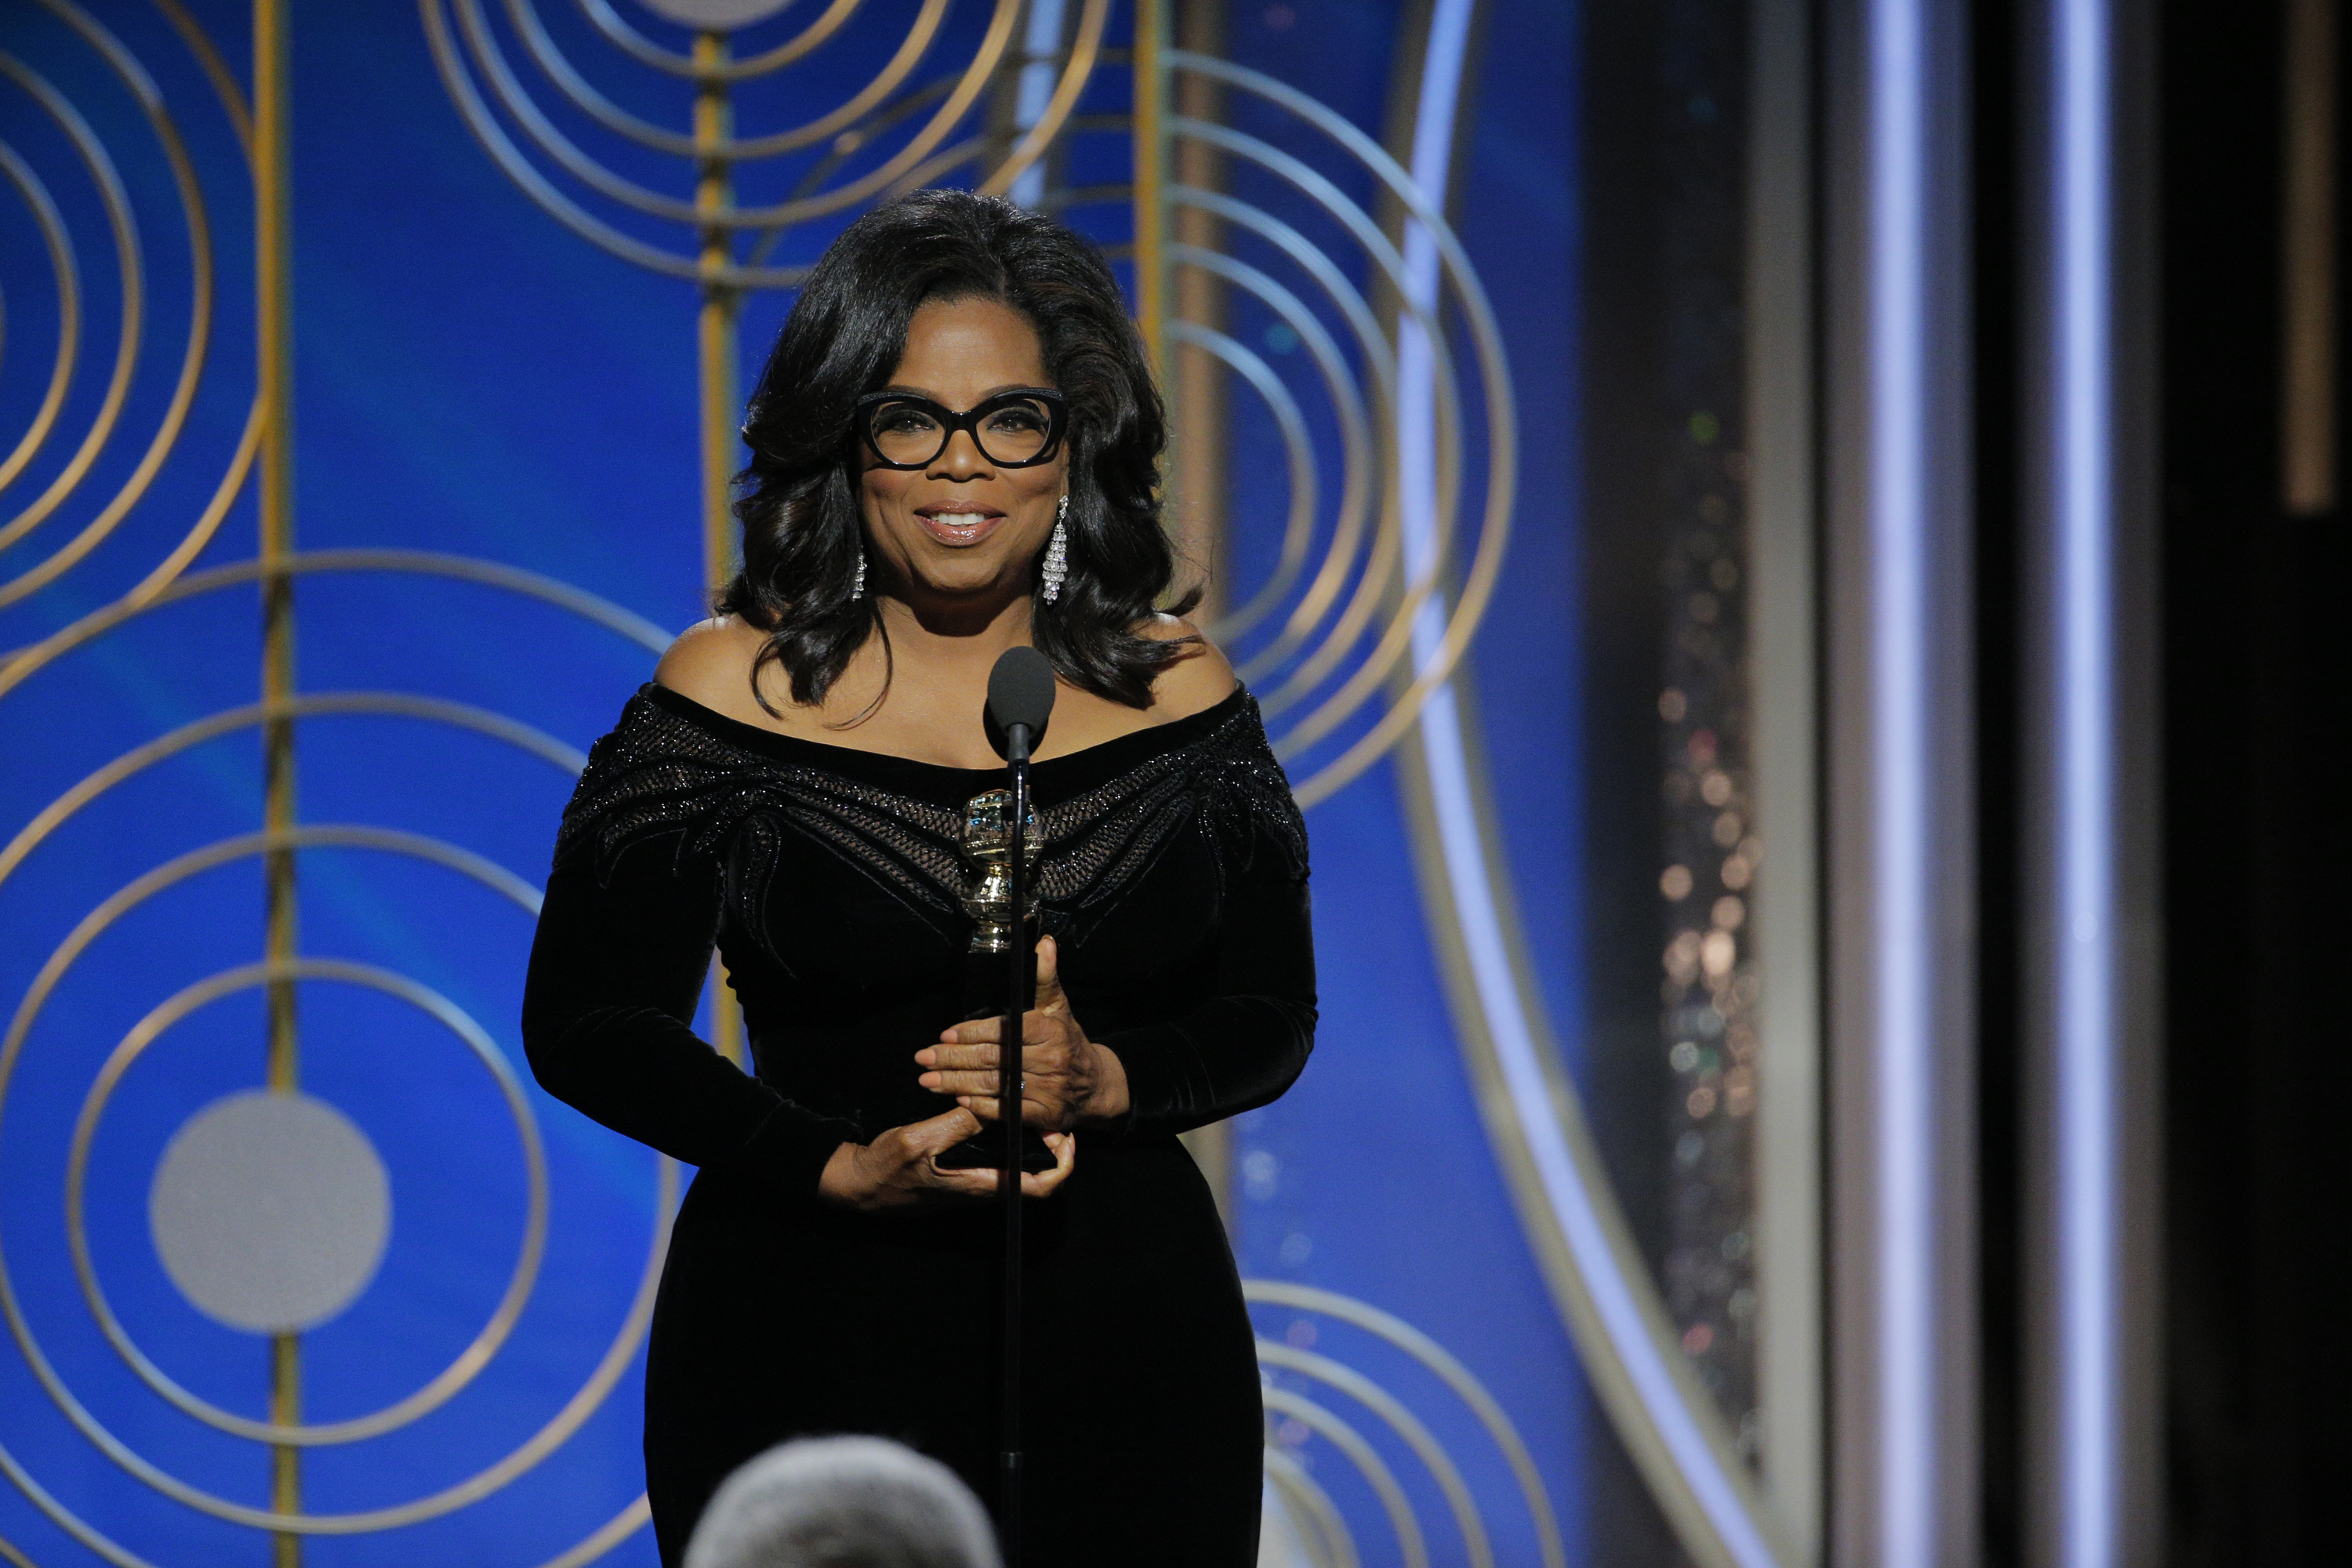 Now you can listen to Oprah Winfrey's 2018 Golden Globes speech on Spotify